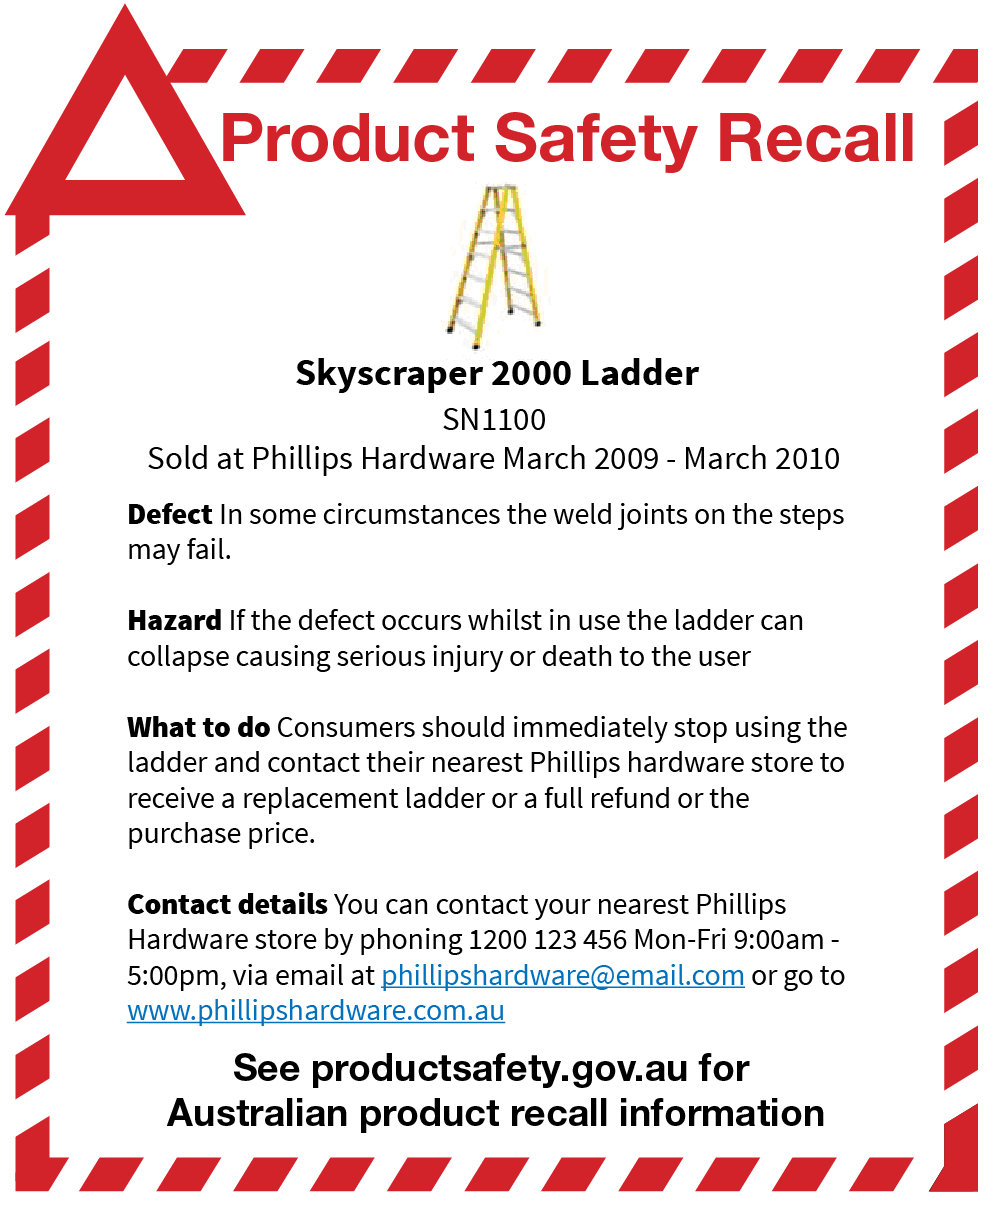 Recall Advertisement Templates Product Safety Australia